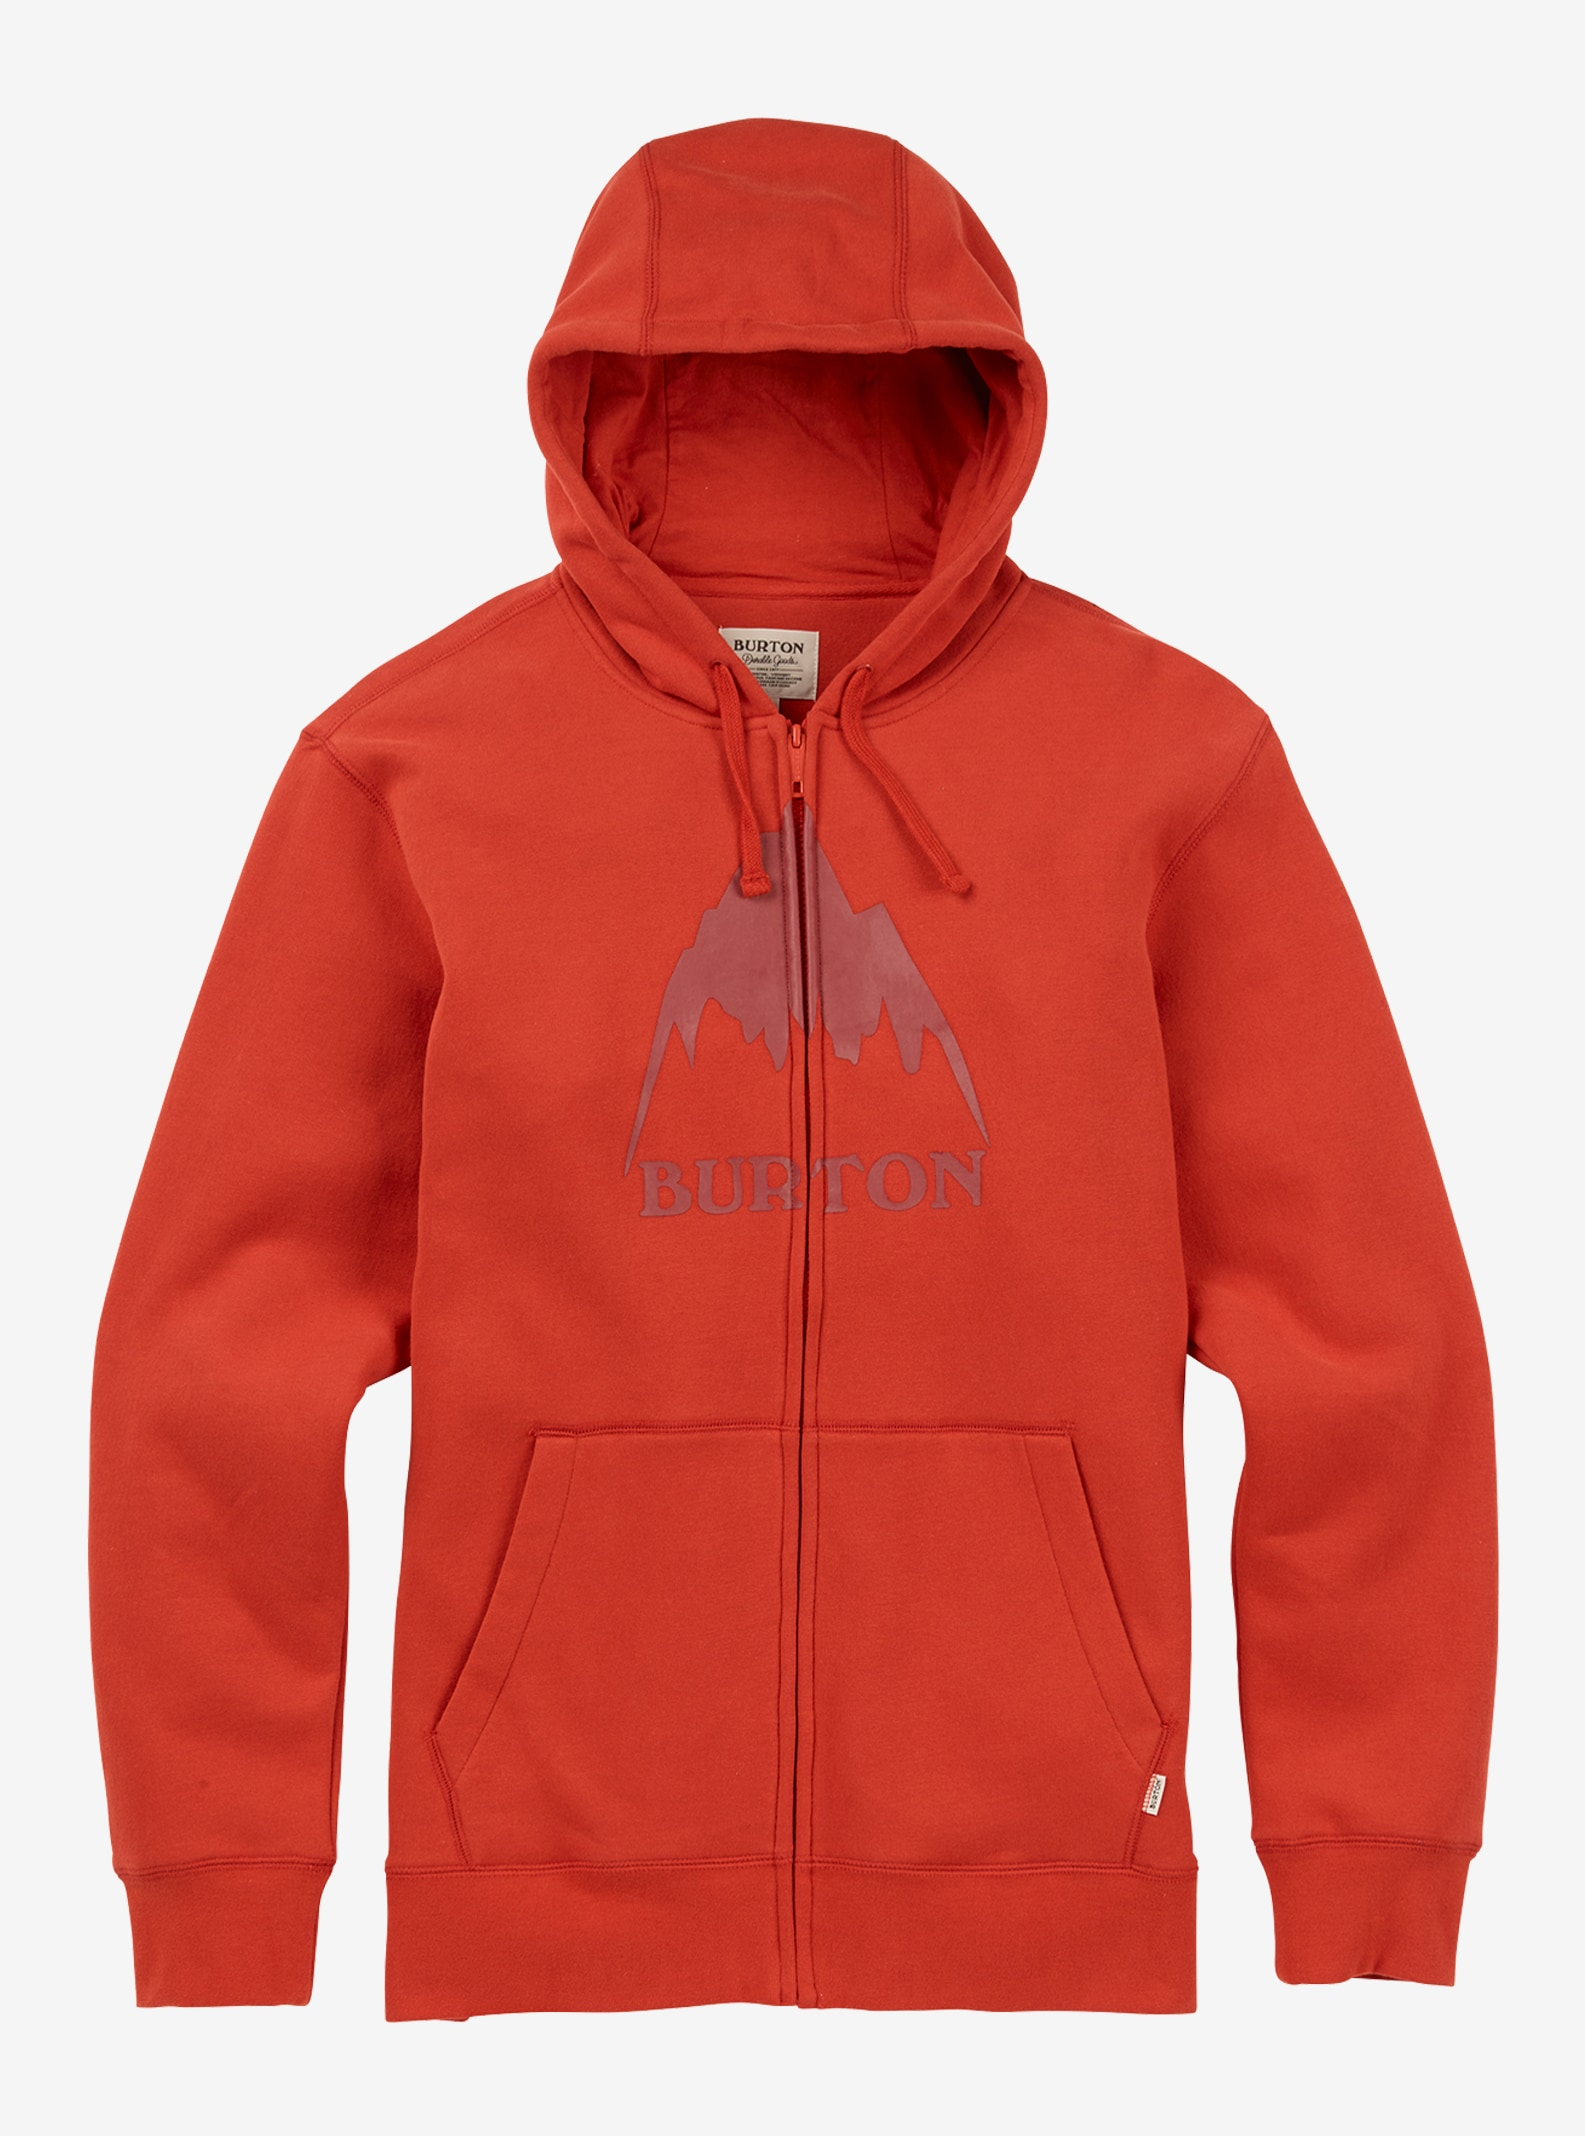 Men's Burton Classic Mountain High Full-Zip Hoodie shown in Bitters